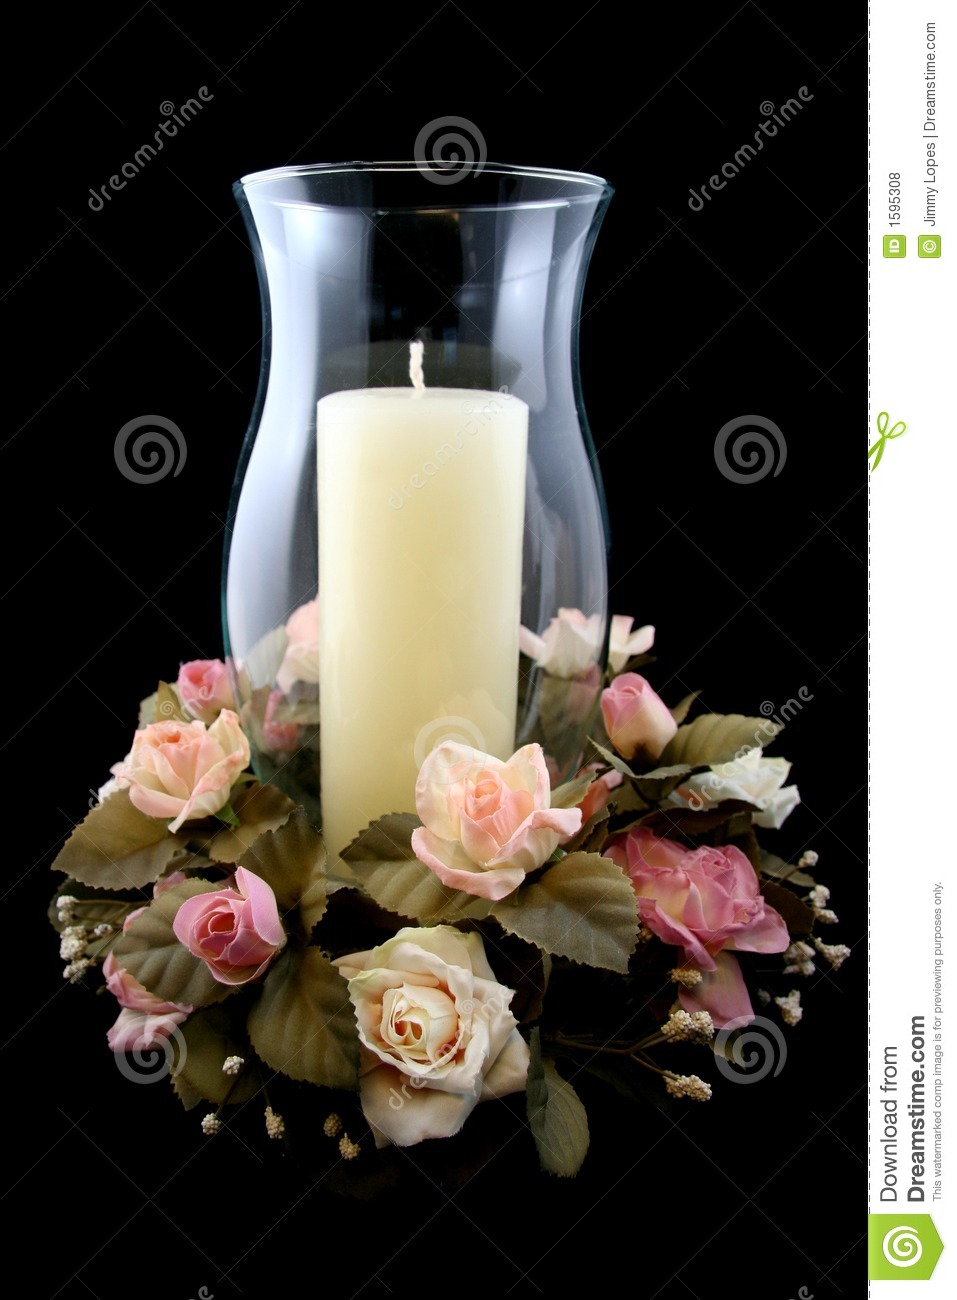 Holiday Candle And Flower Centerpiece Royalty Free Stock